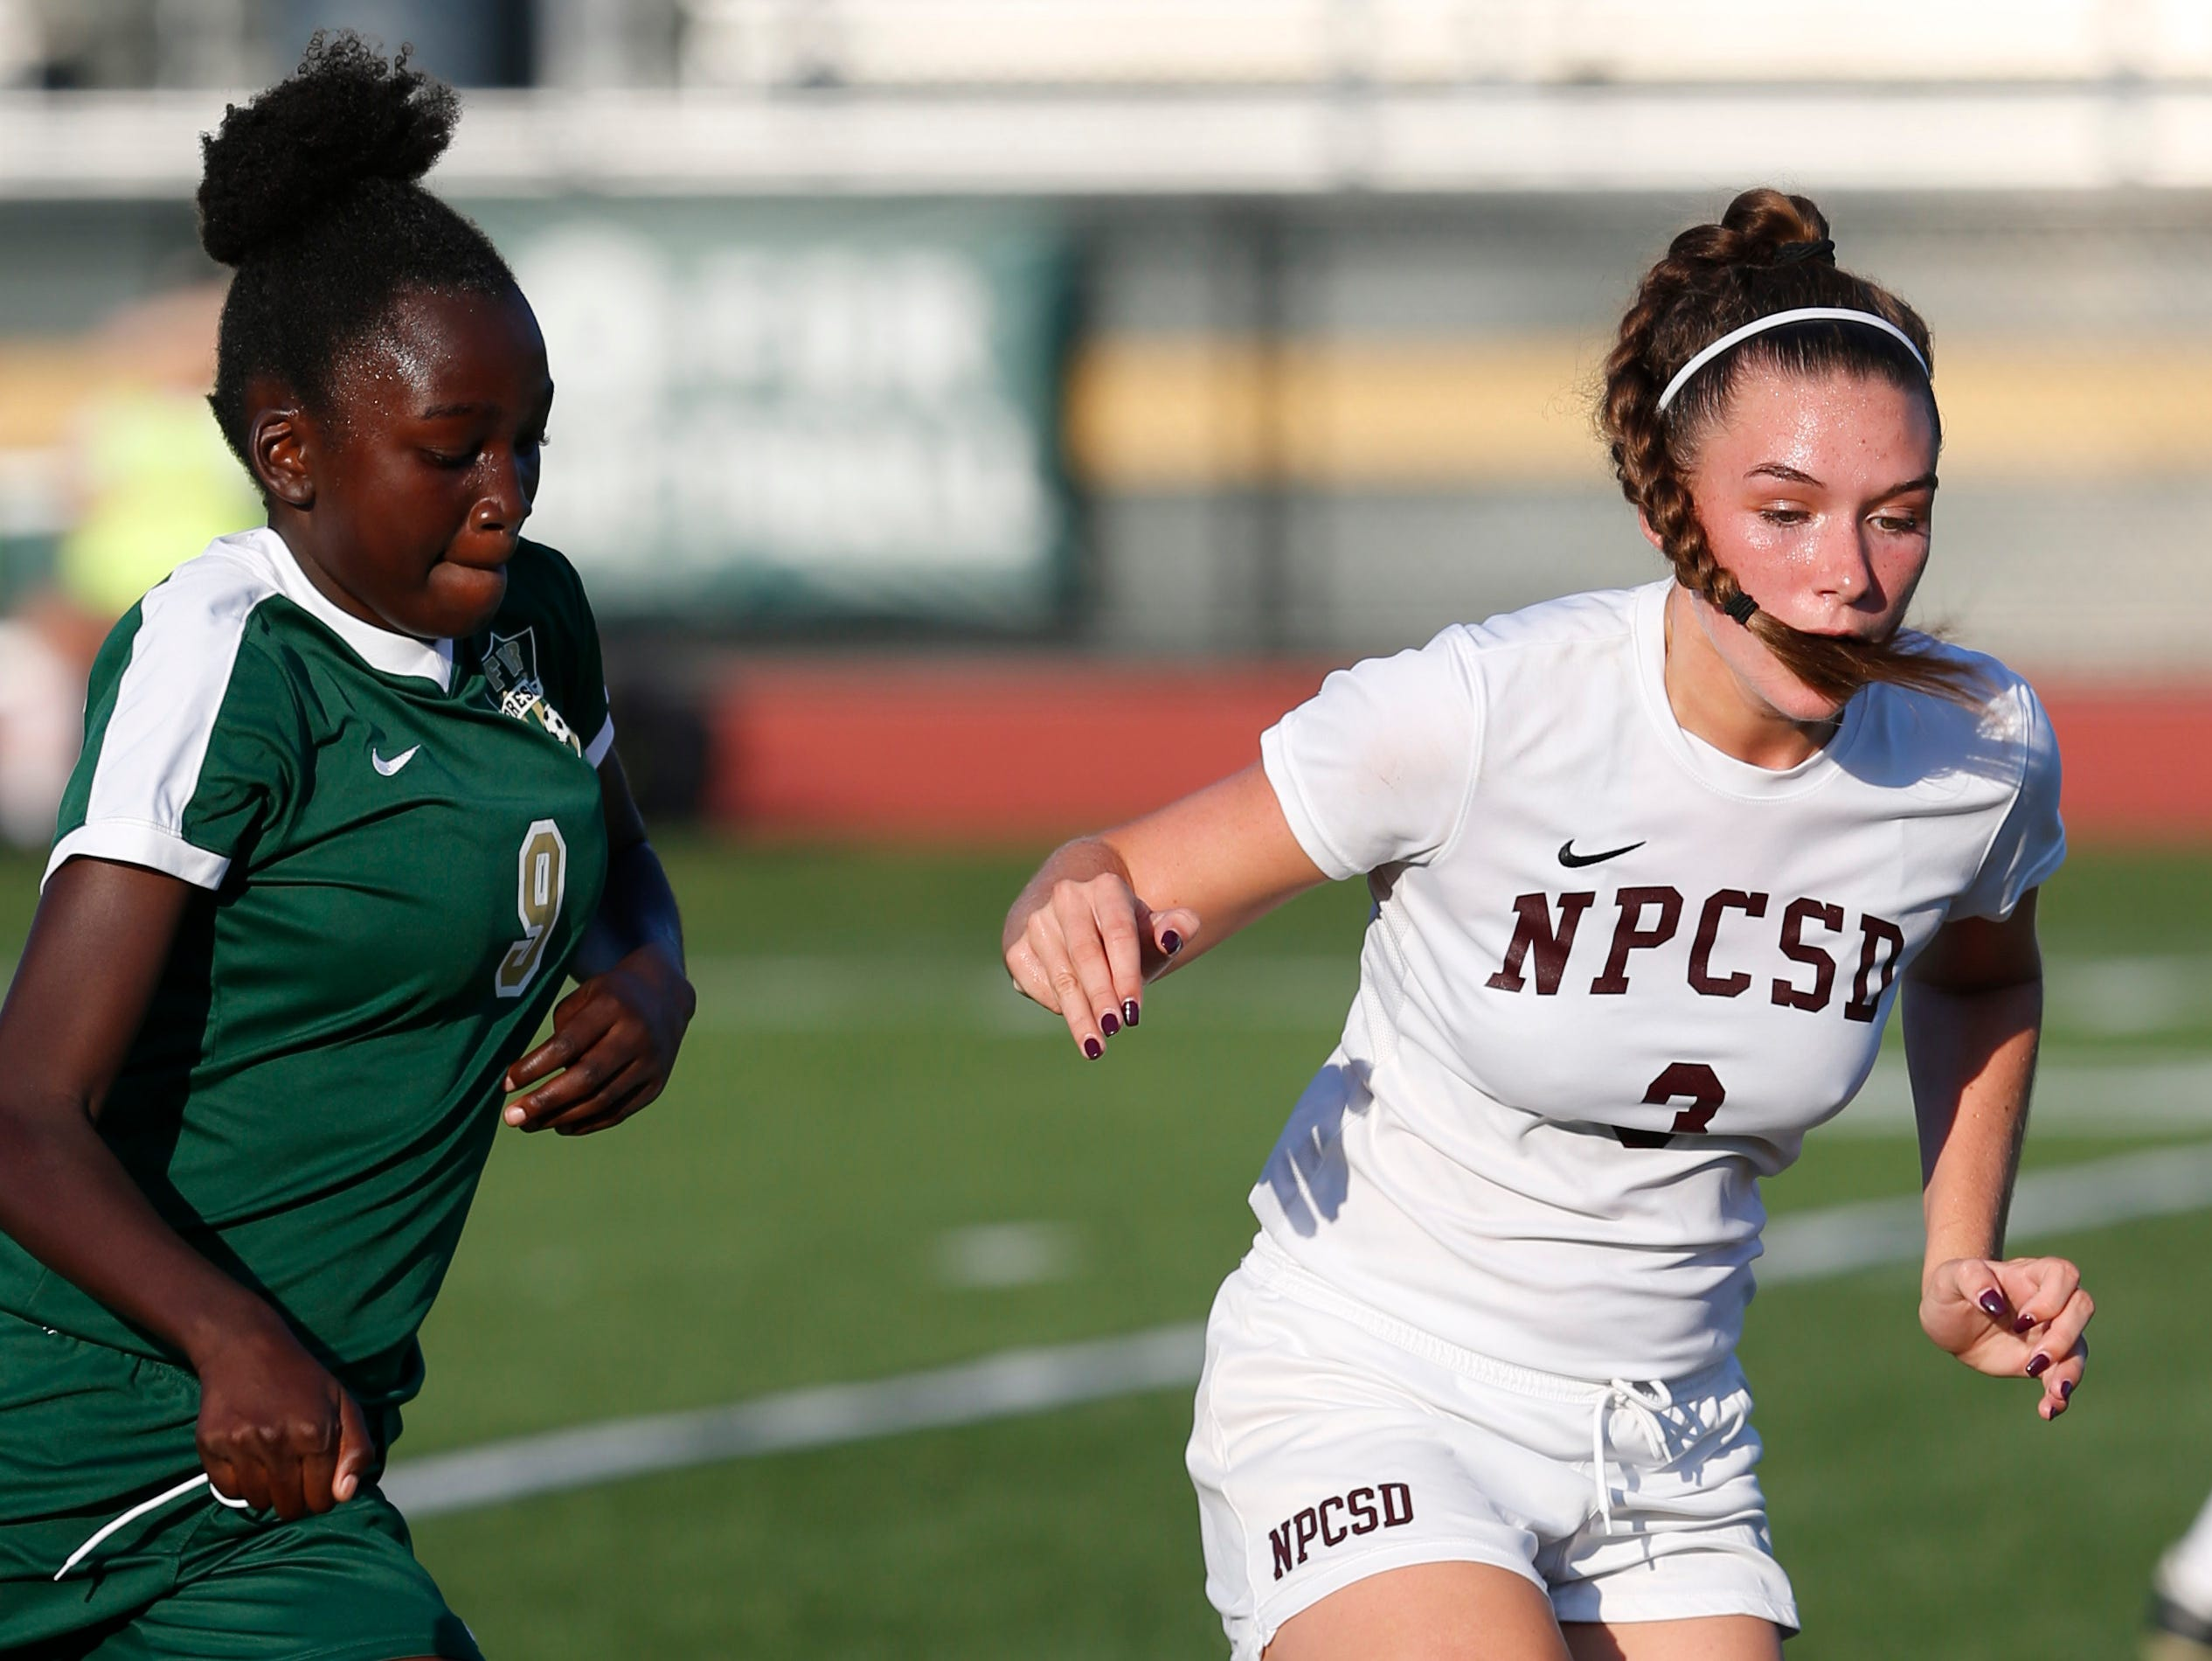 New Paltz's Taylor Bruck leads the ball away from FDR's Marissa Velez during Wednesday's game in Hyde Park on September 5, 2018.